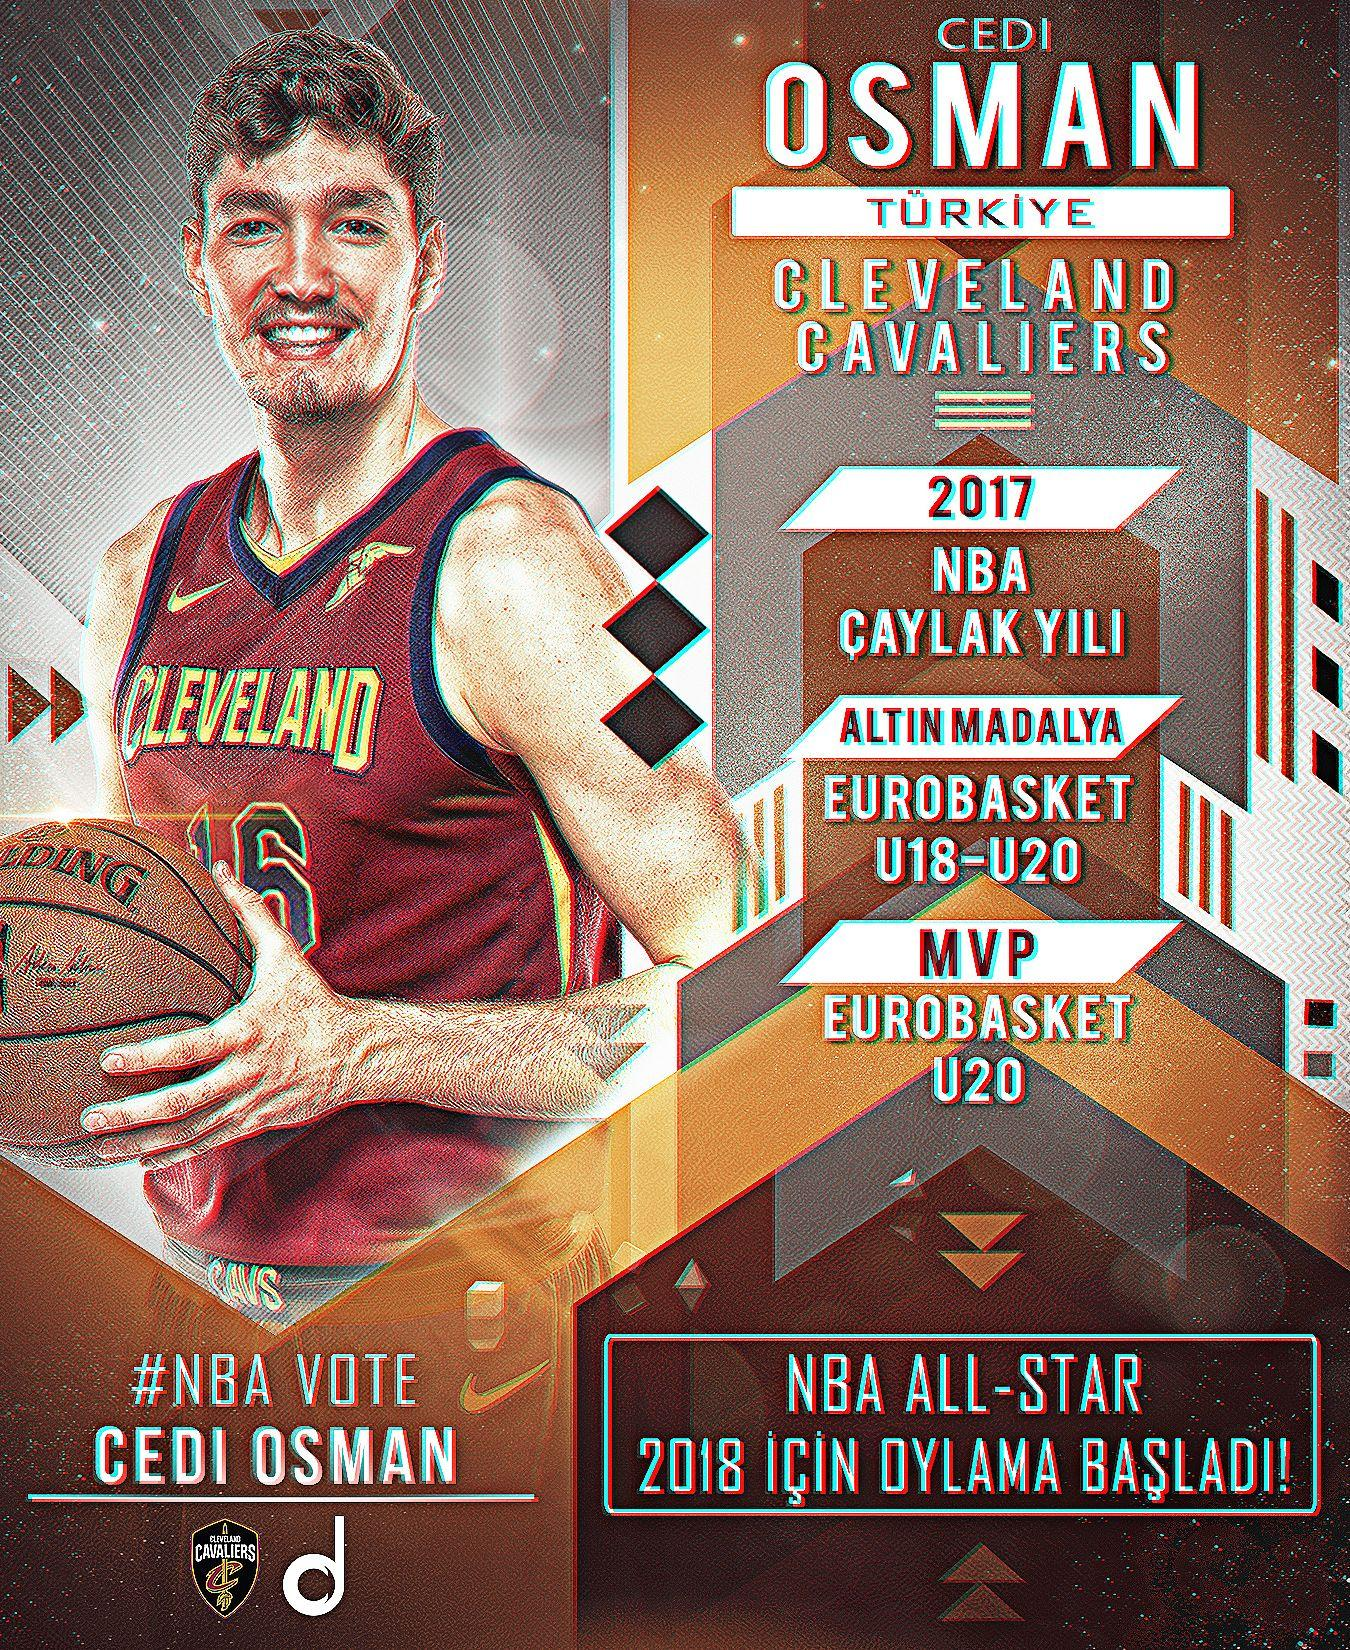 Cedi Osman by deployercreative on DeviantArt